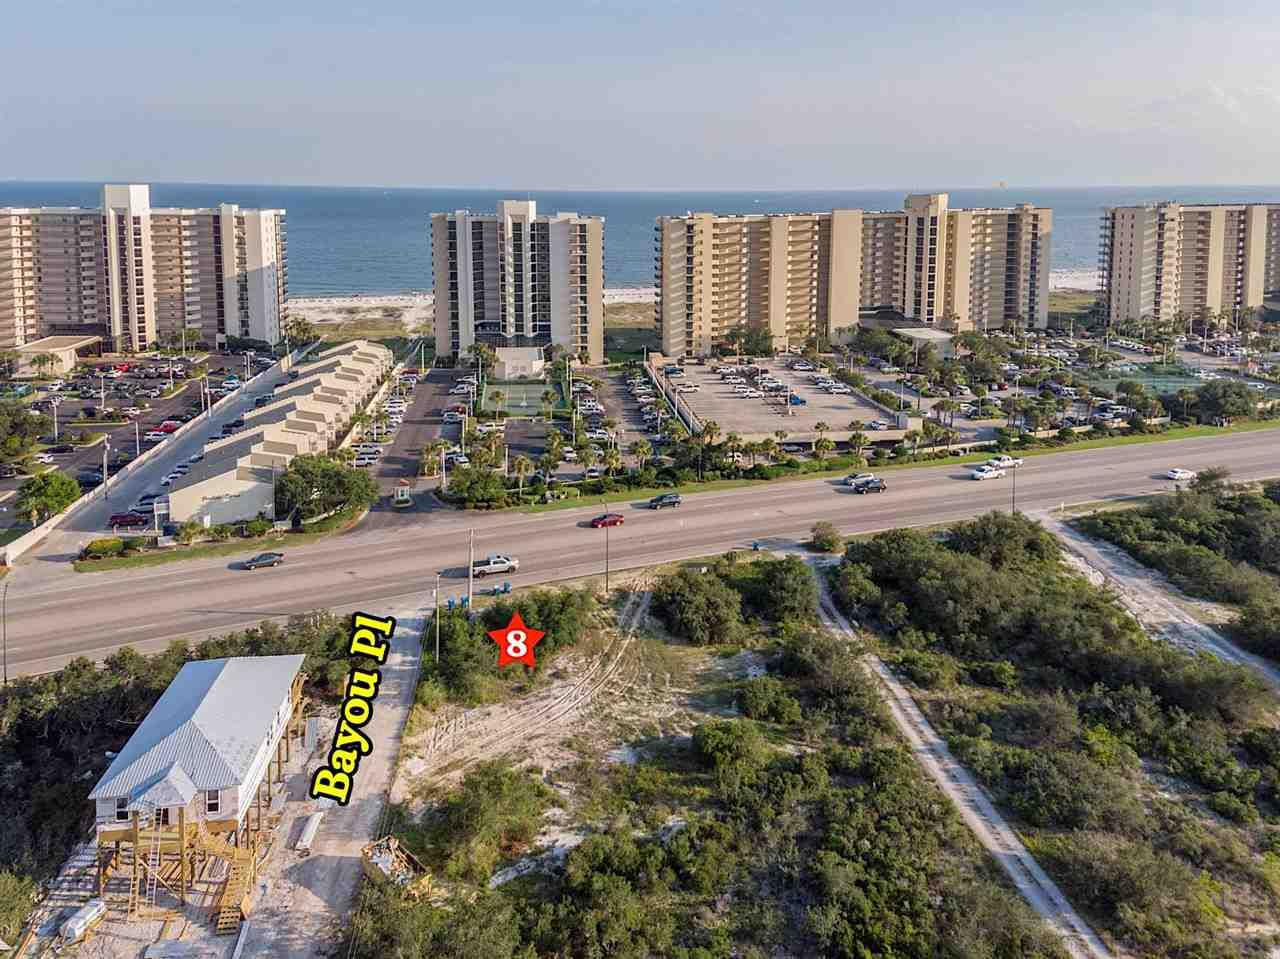 27005 Perdido Beach Blvd, Orange Beach, AL 36561